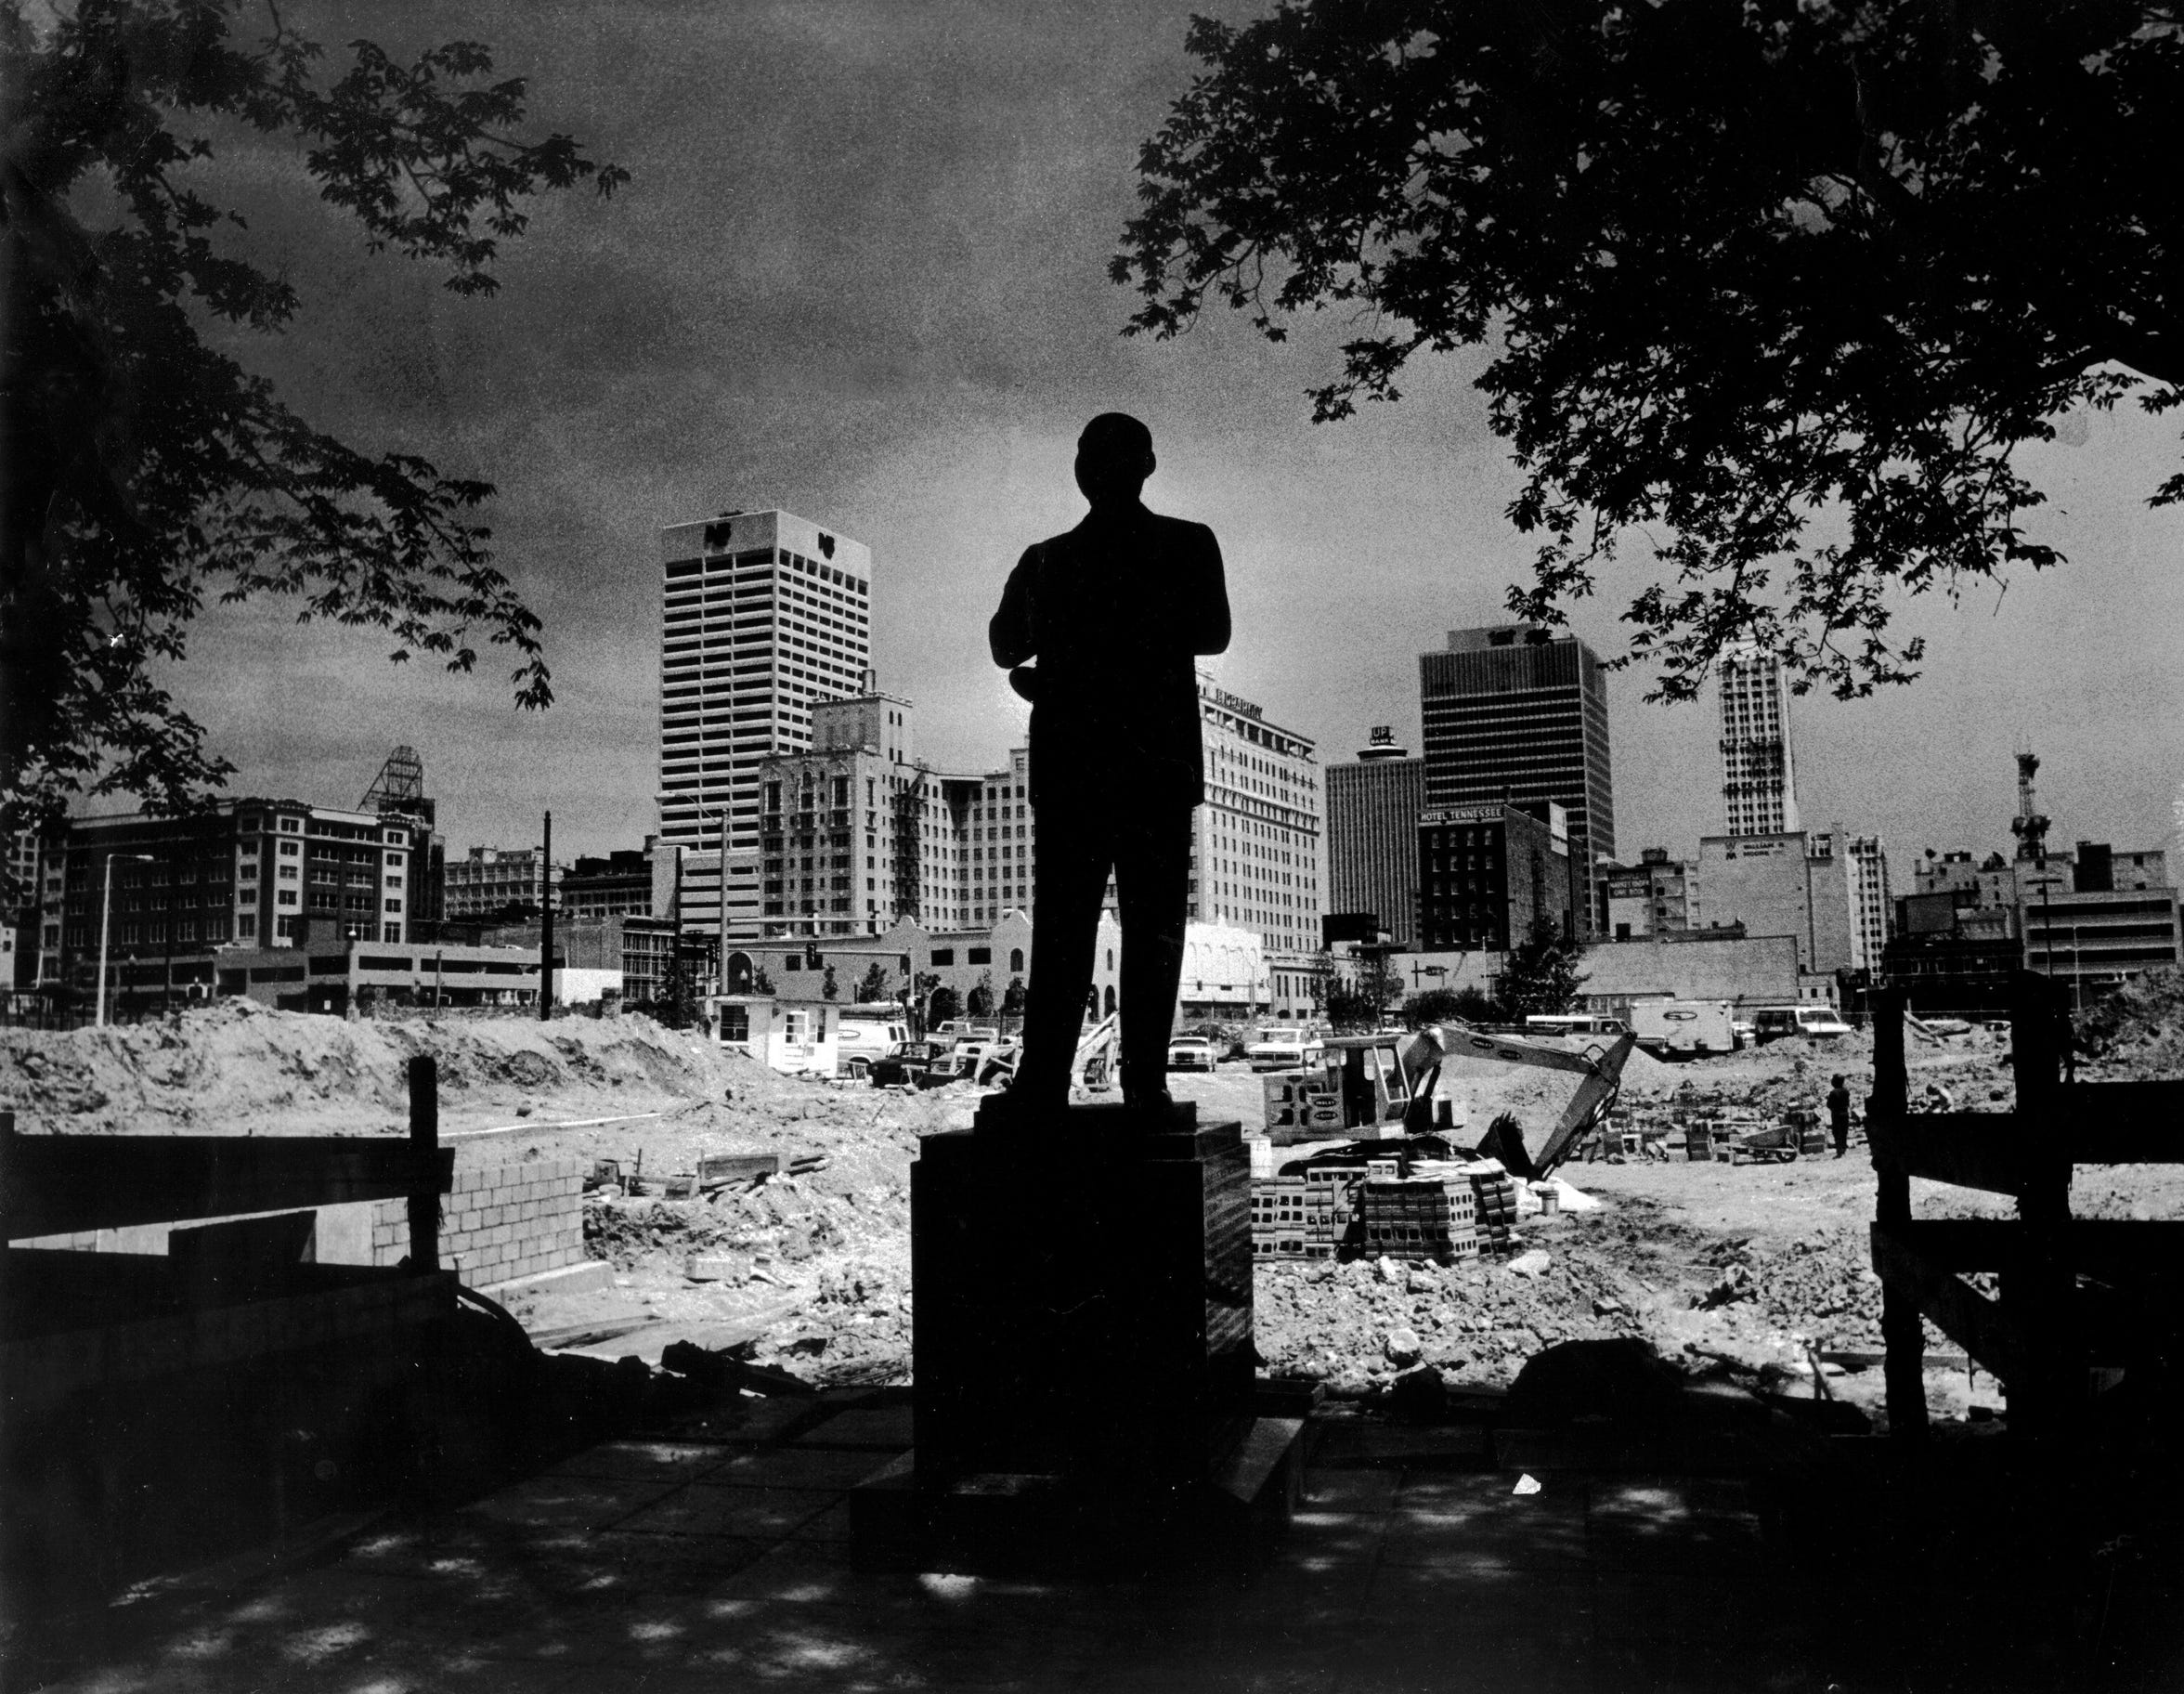 The statue of W.C. Handy is surrounded by construction of a stage and seating area in Handy Park on Beale Street on May 10, 1982. The city launched the Beale Street Historic District in 1983 with $13.5 million in city, federal and private funds to recapture the glory of the world renowned street that is recognized as the home of the blues and the one-time center of black culture in Memphis.